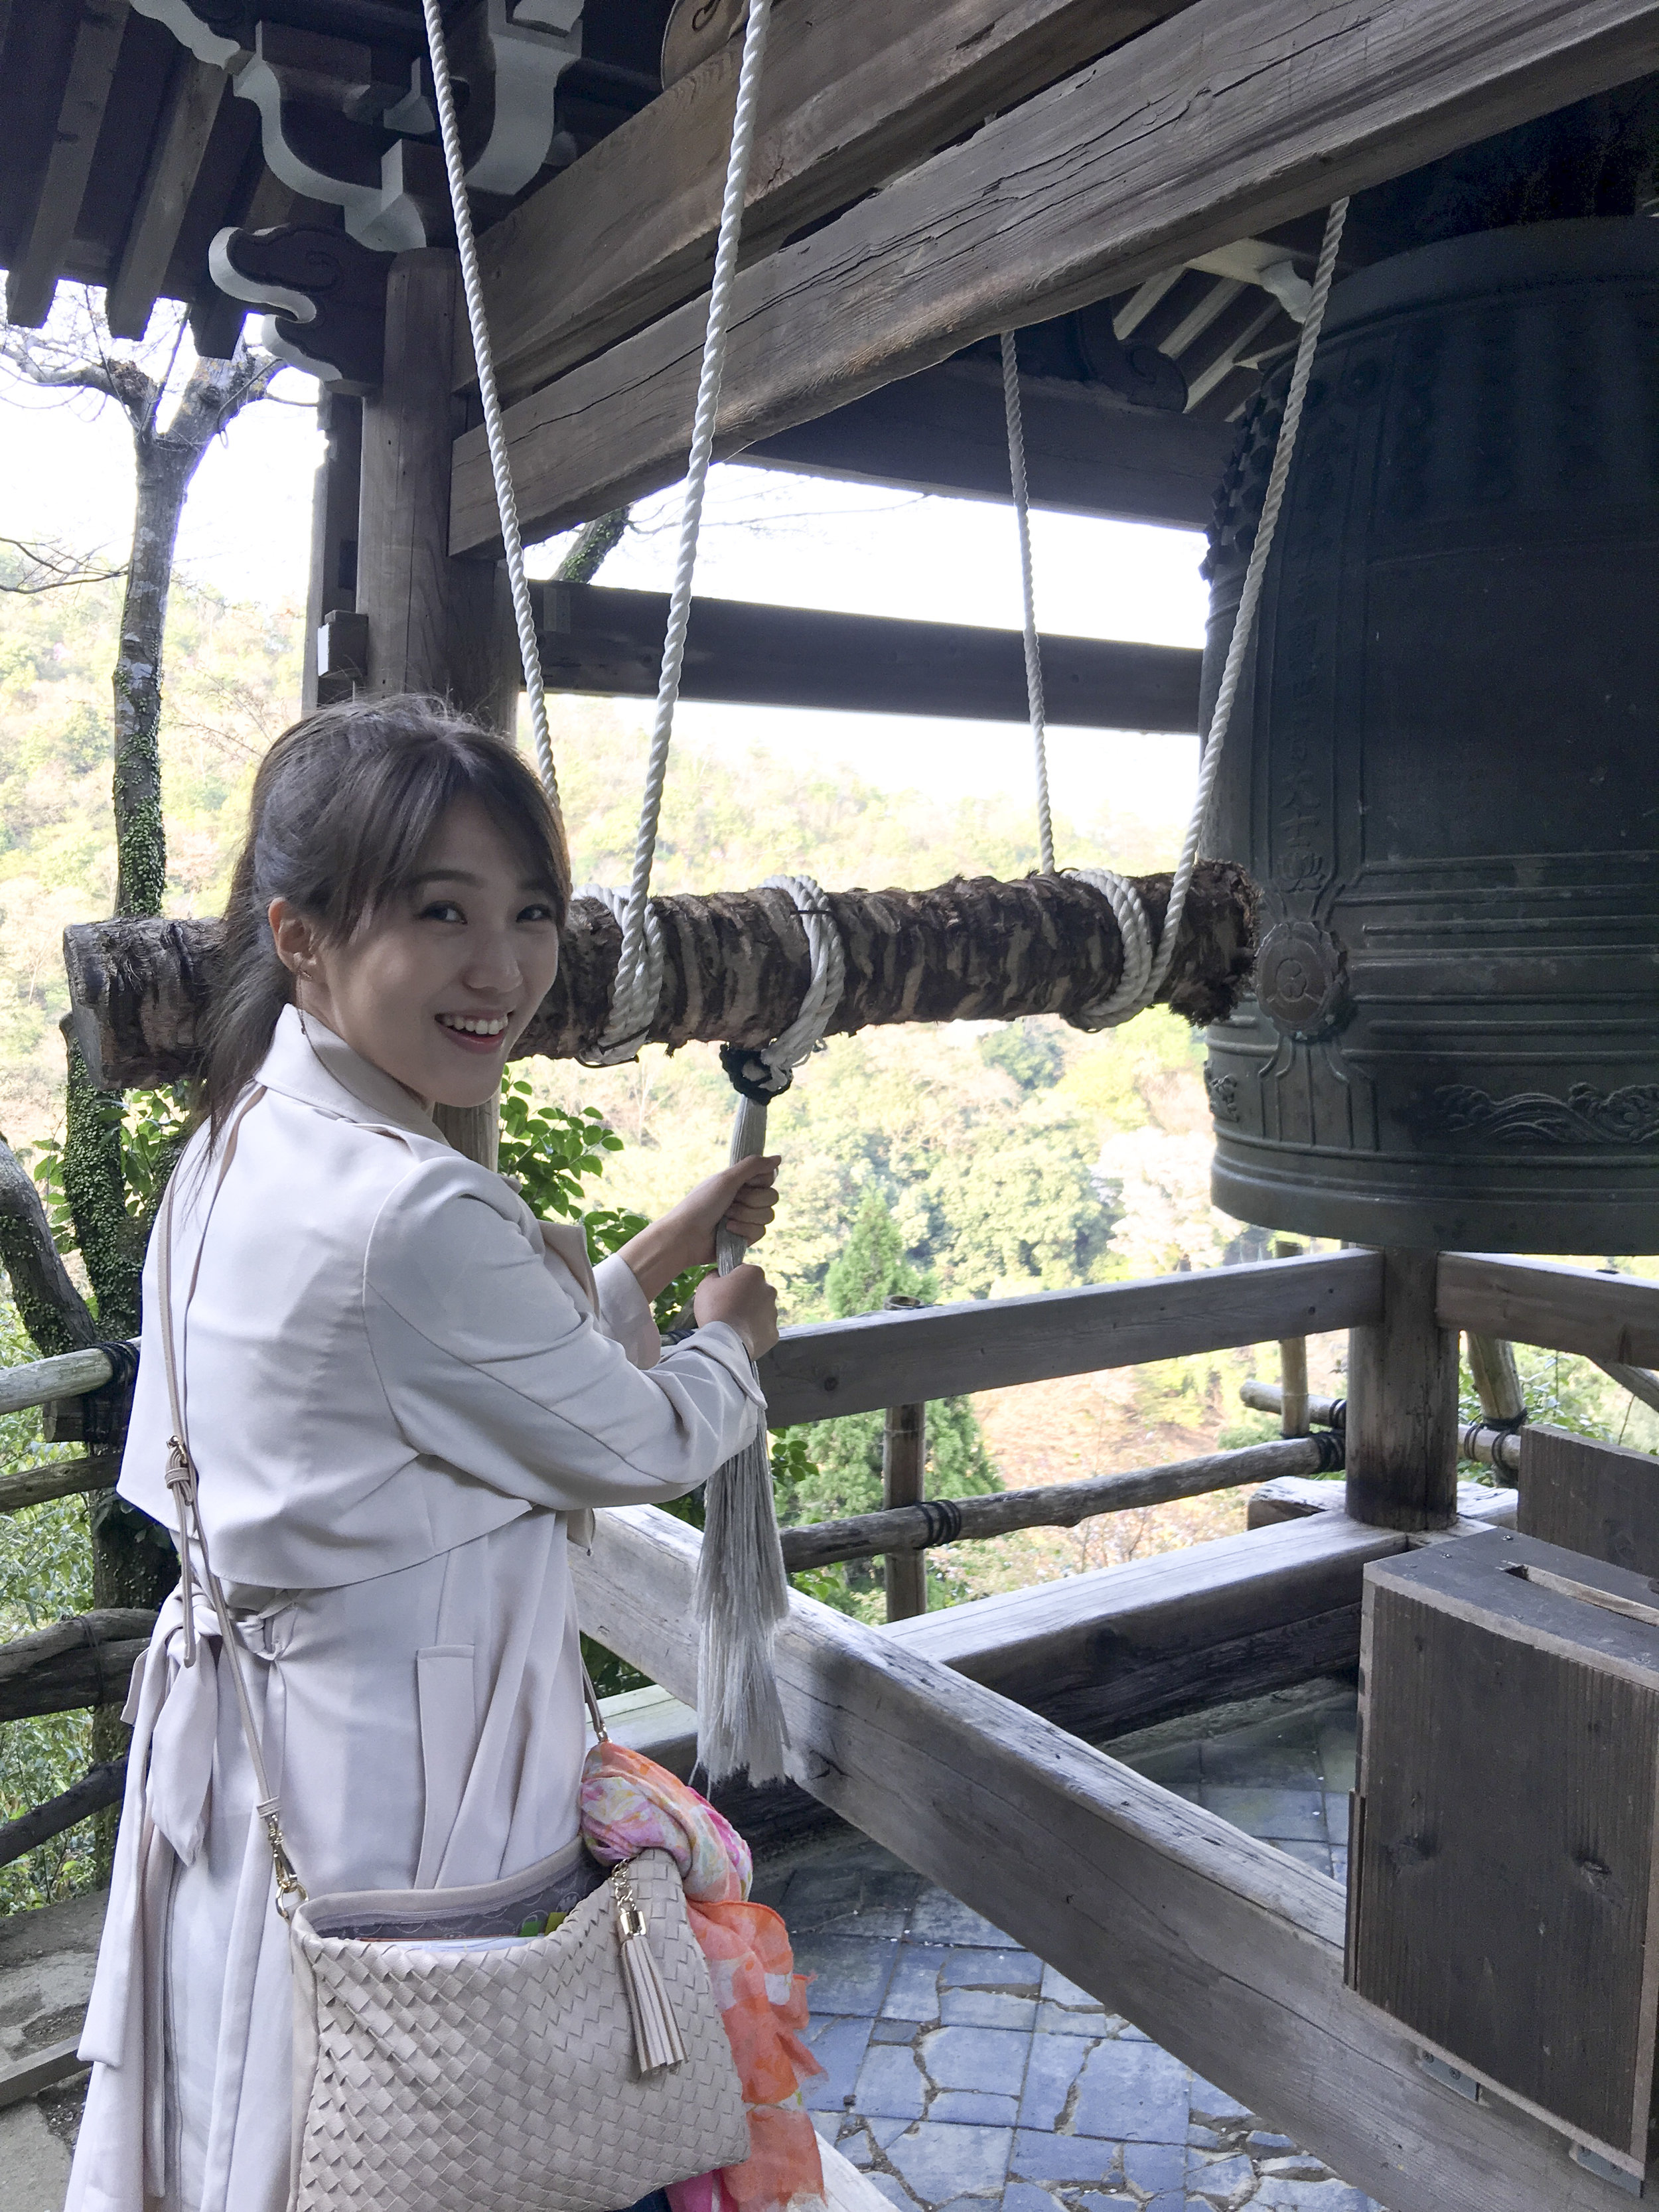 """""""I can't ring this bell again"""" she says, """"I've rung it three times and it says 'FREE 3 Rings only'""""."""